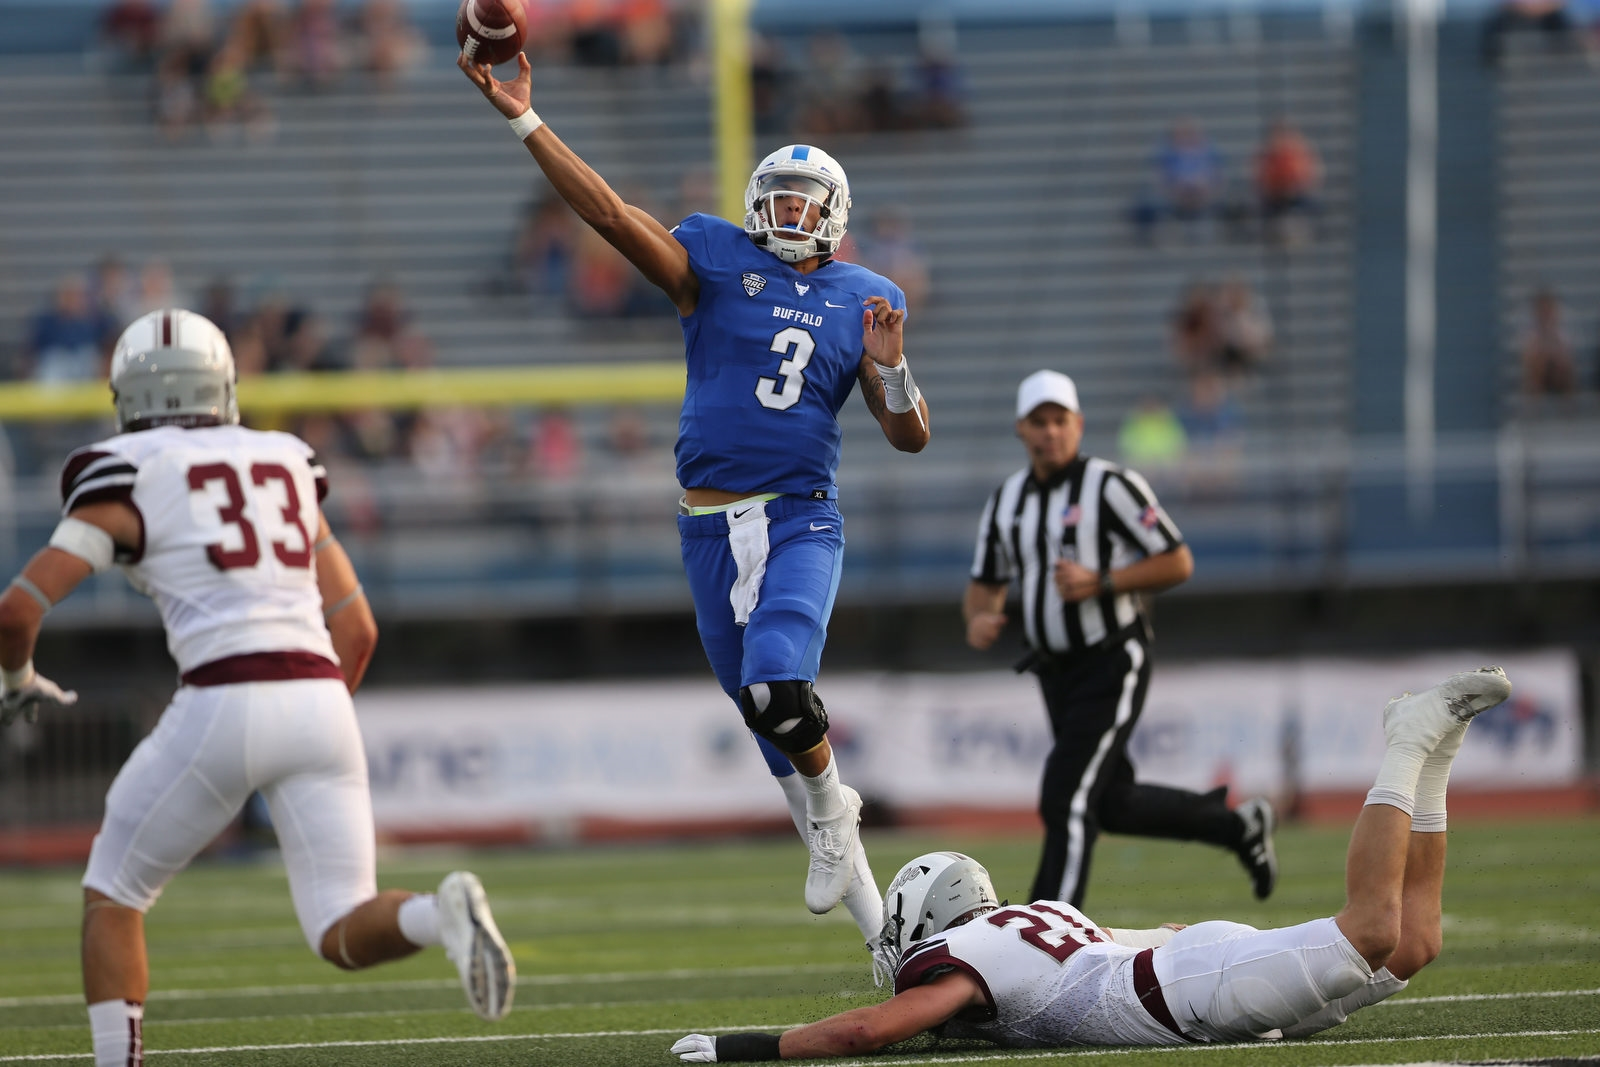 UB quarterback Tyree Jackson (3) throws a pass as he evades Colgate linebacker T.J. Holl.